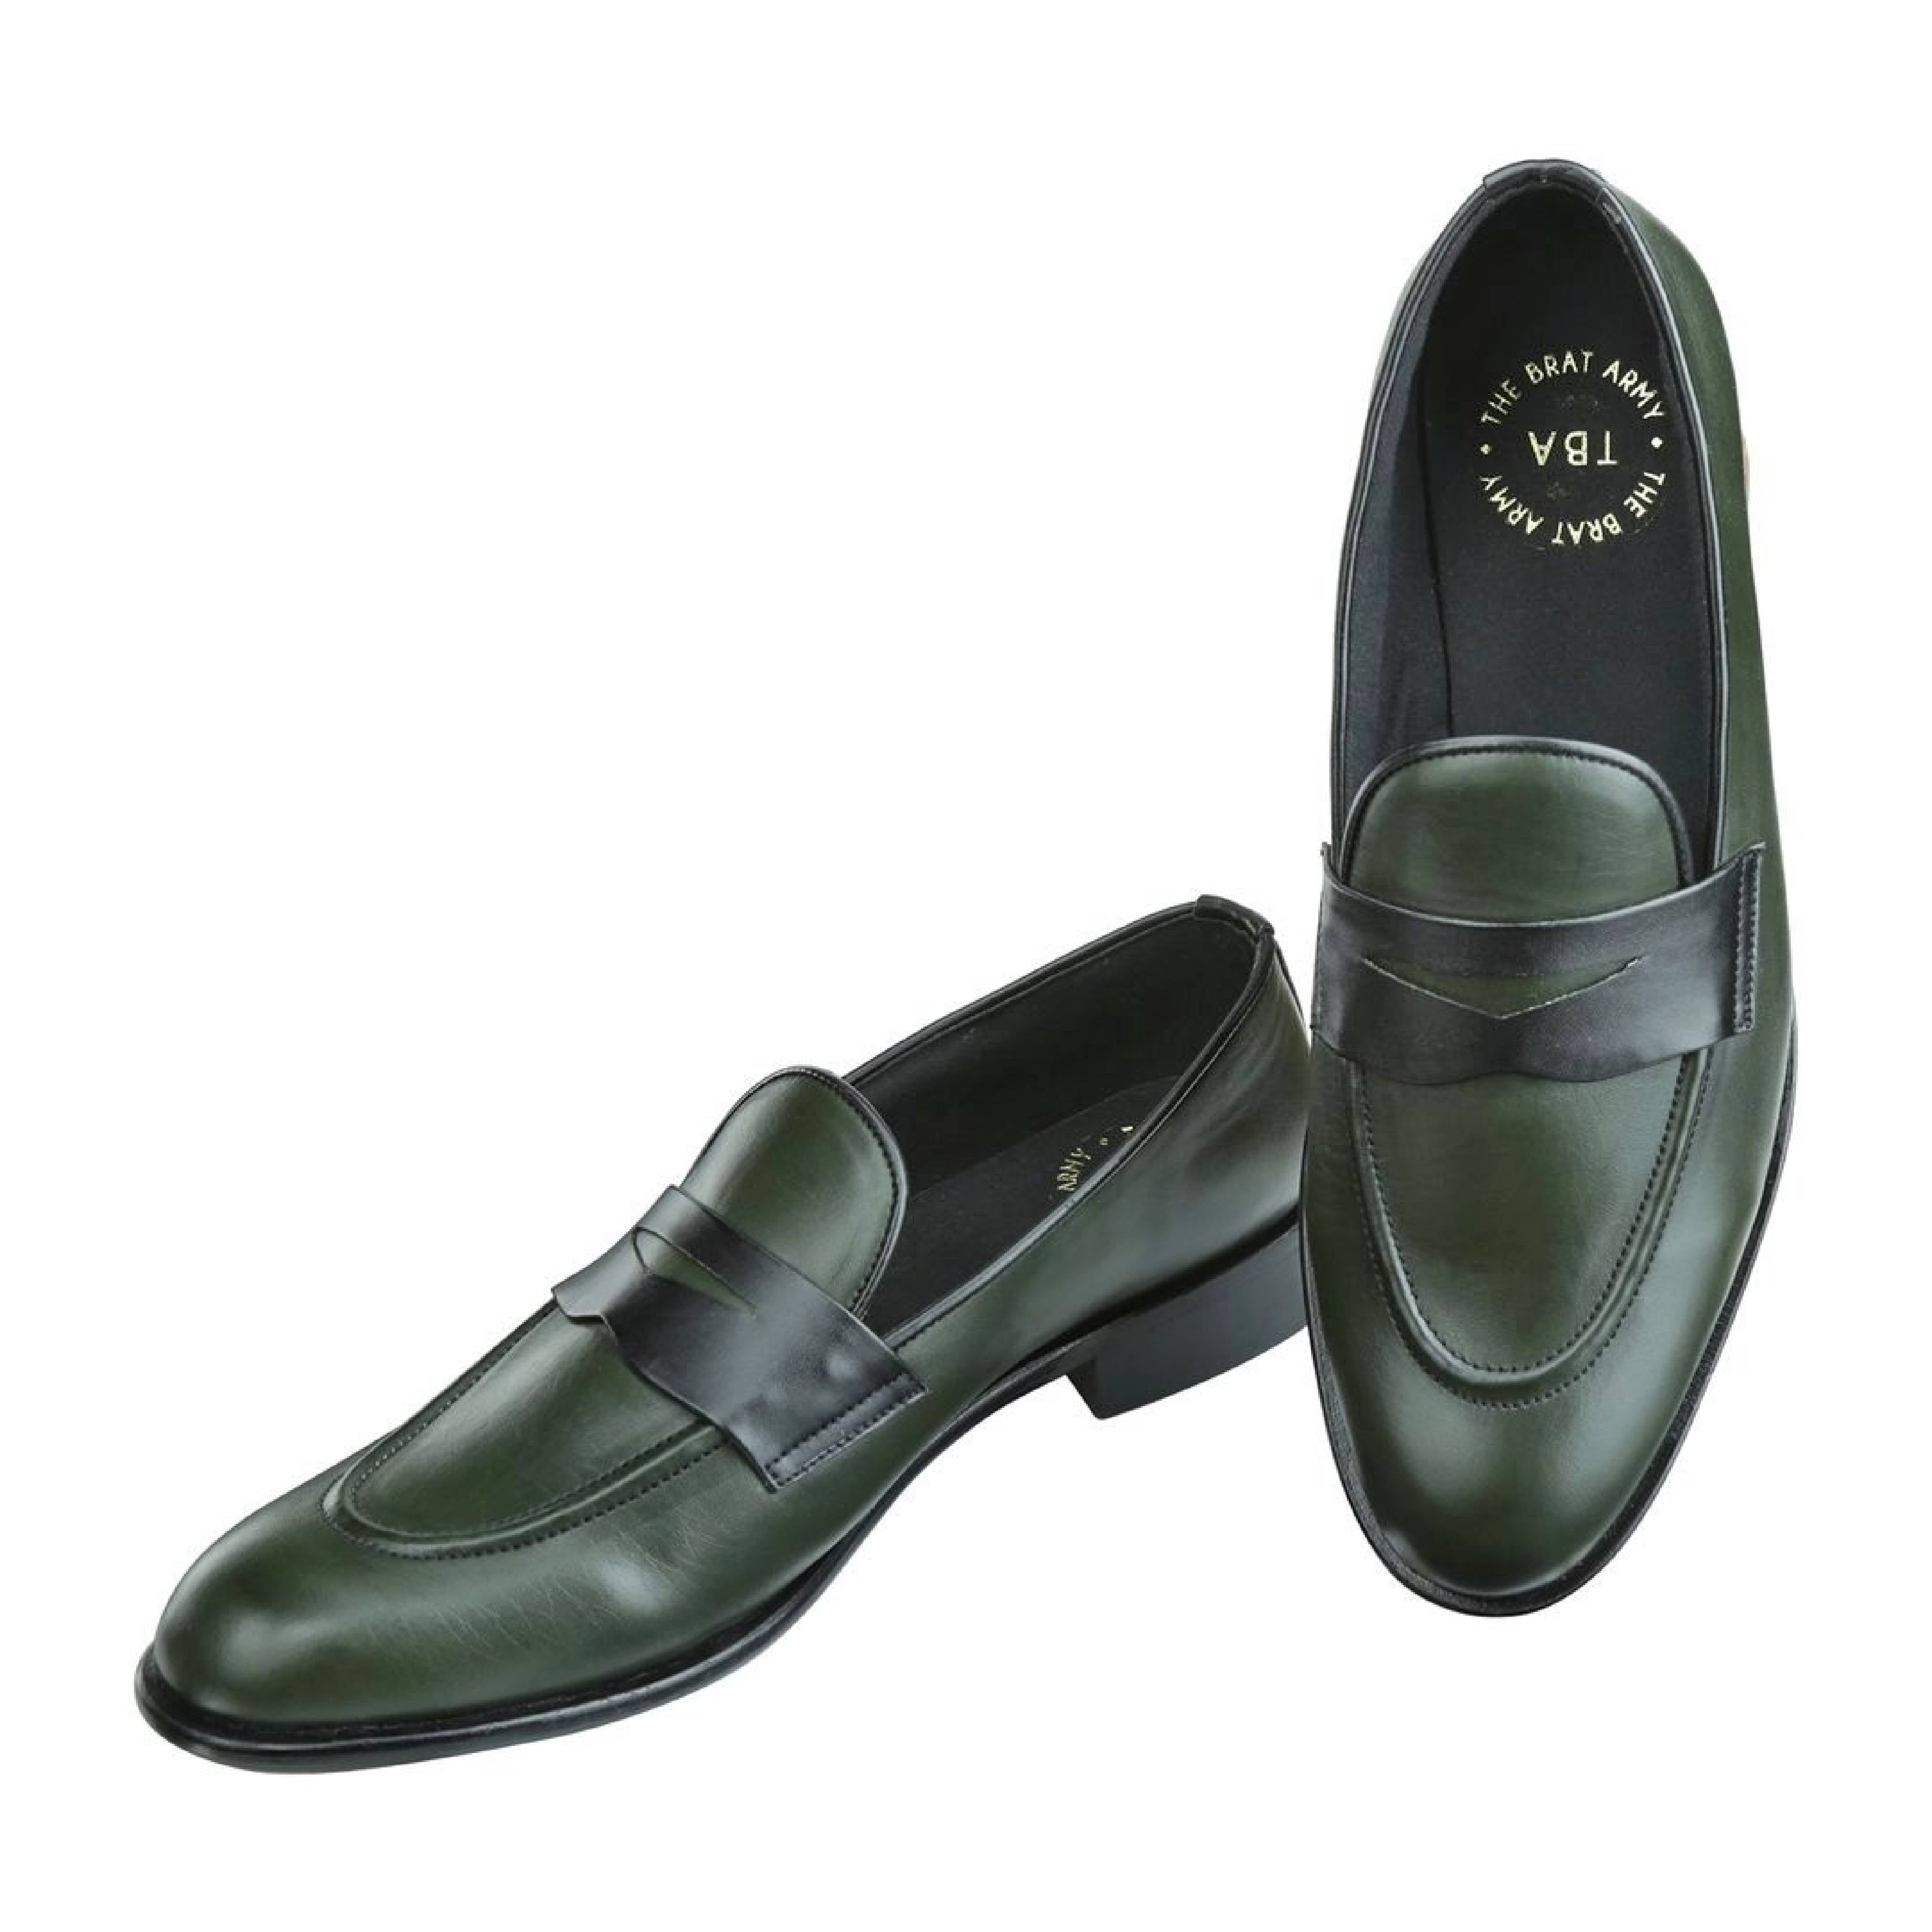 PICTON OLIVE GREEN AND BLACK PENNY LOAFERS